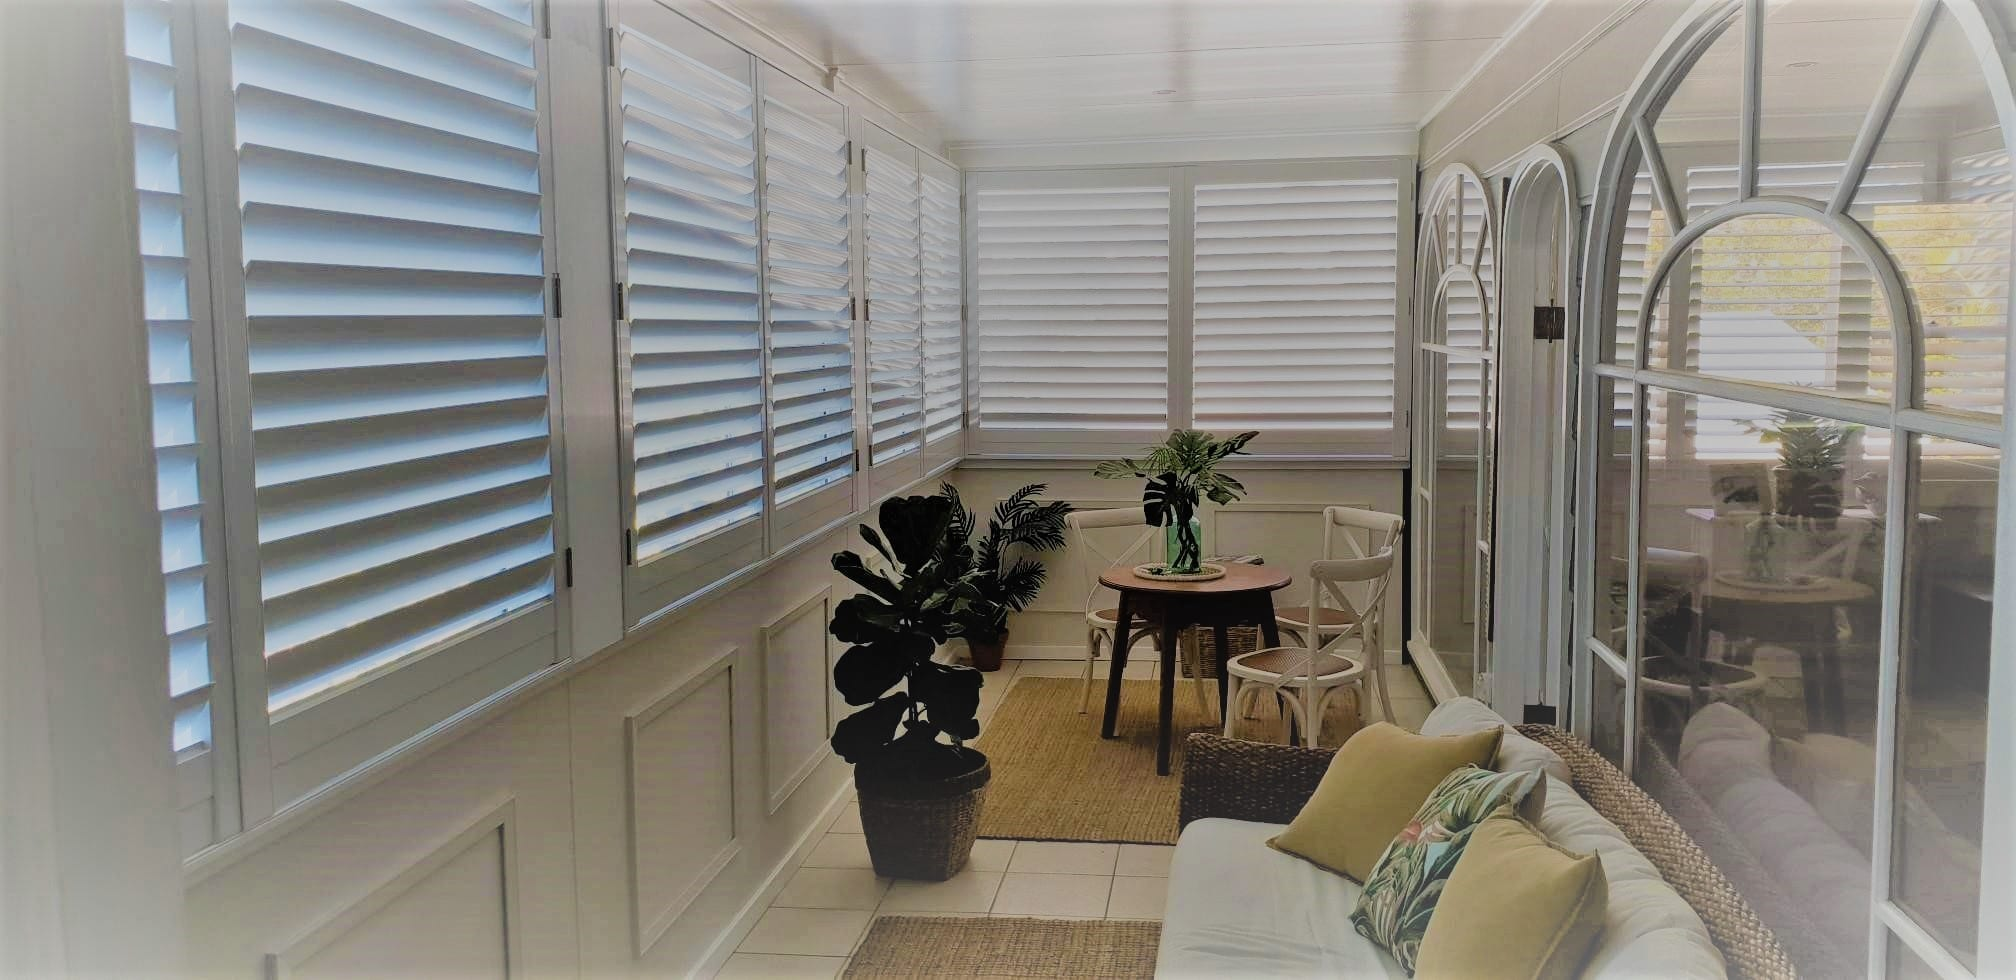 Allure Aluminium Plantation Shutters Kiana - Fusion Shutters and Blinds